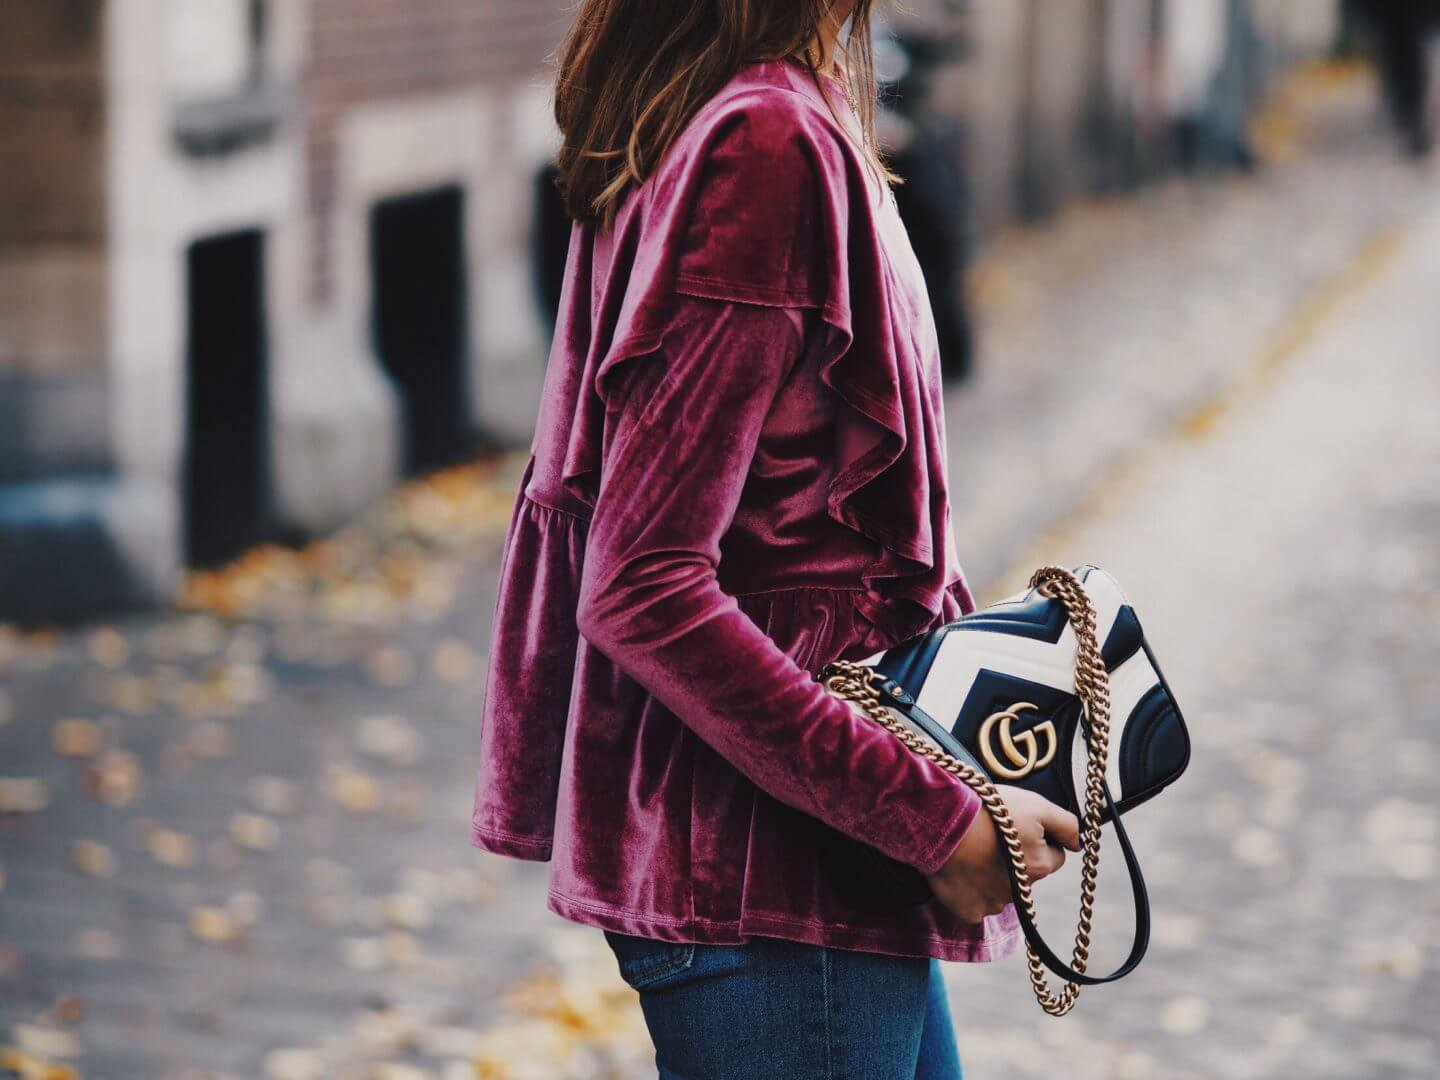 Wrap yourself in Velvet Tops & Dresses